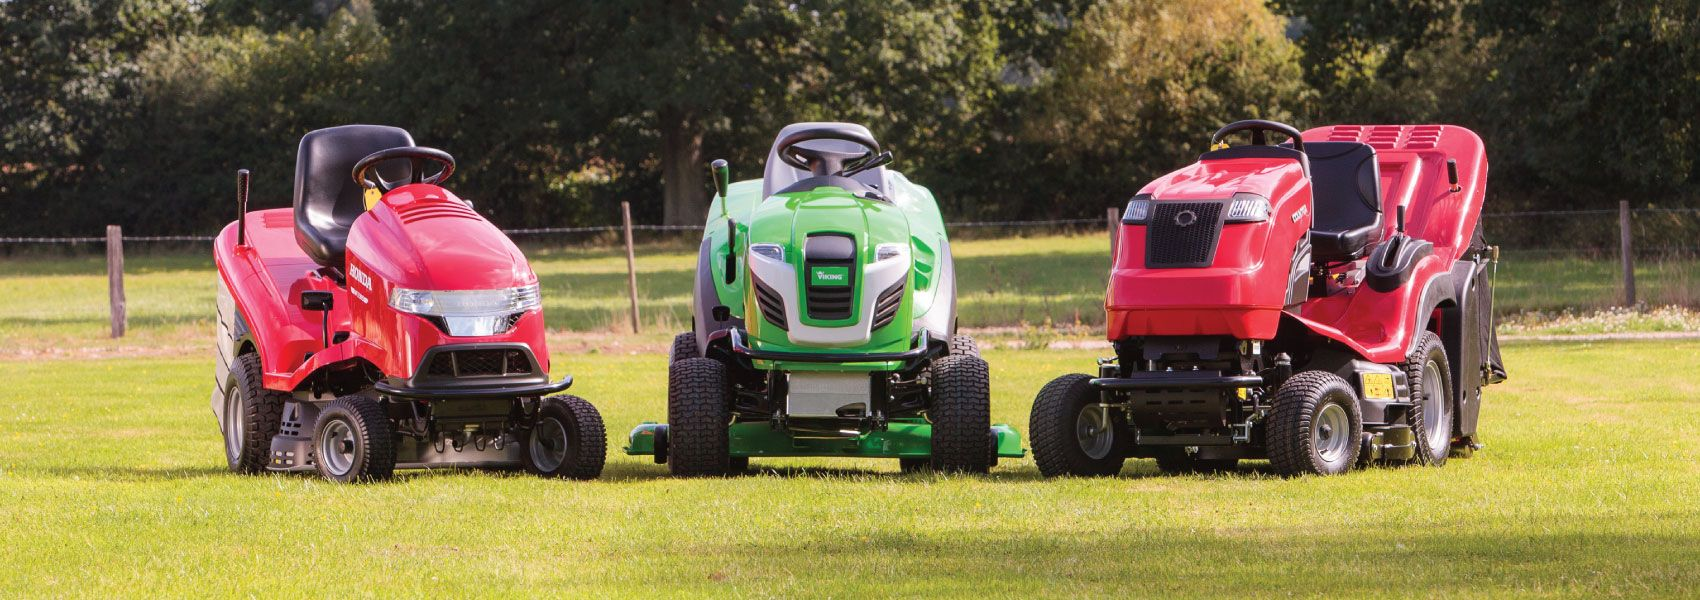 mowers-uk-garden-tractors-hampshire